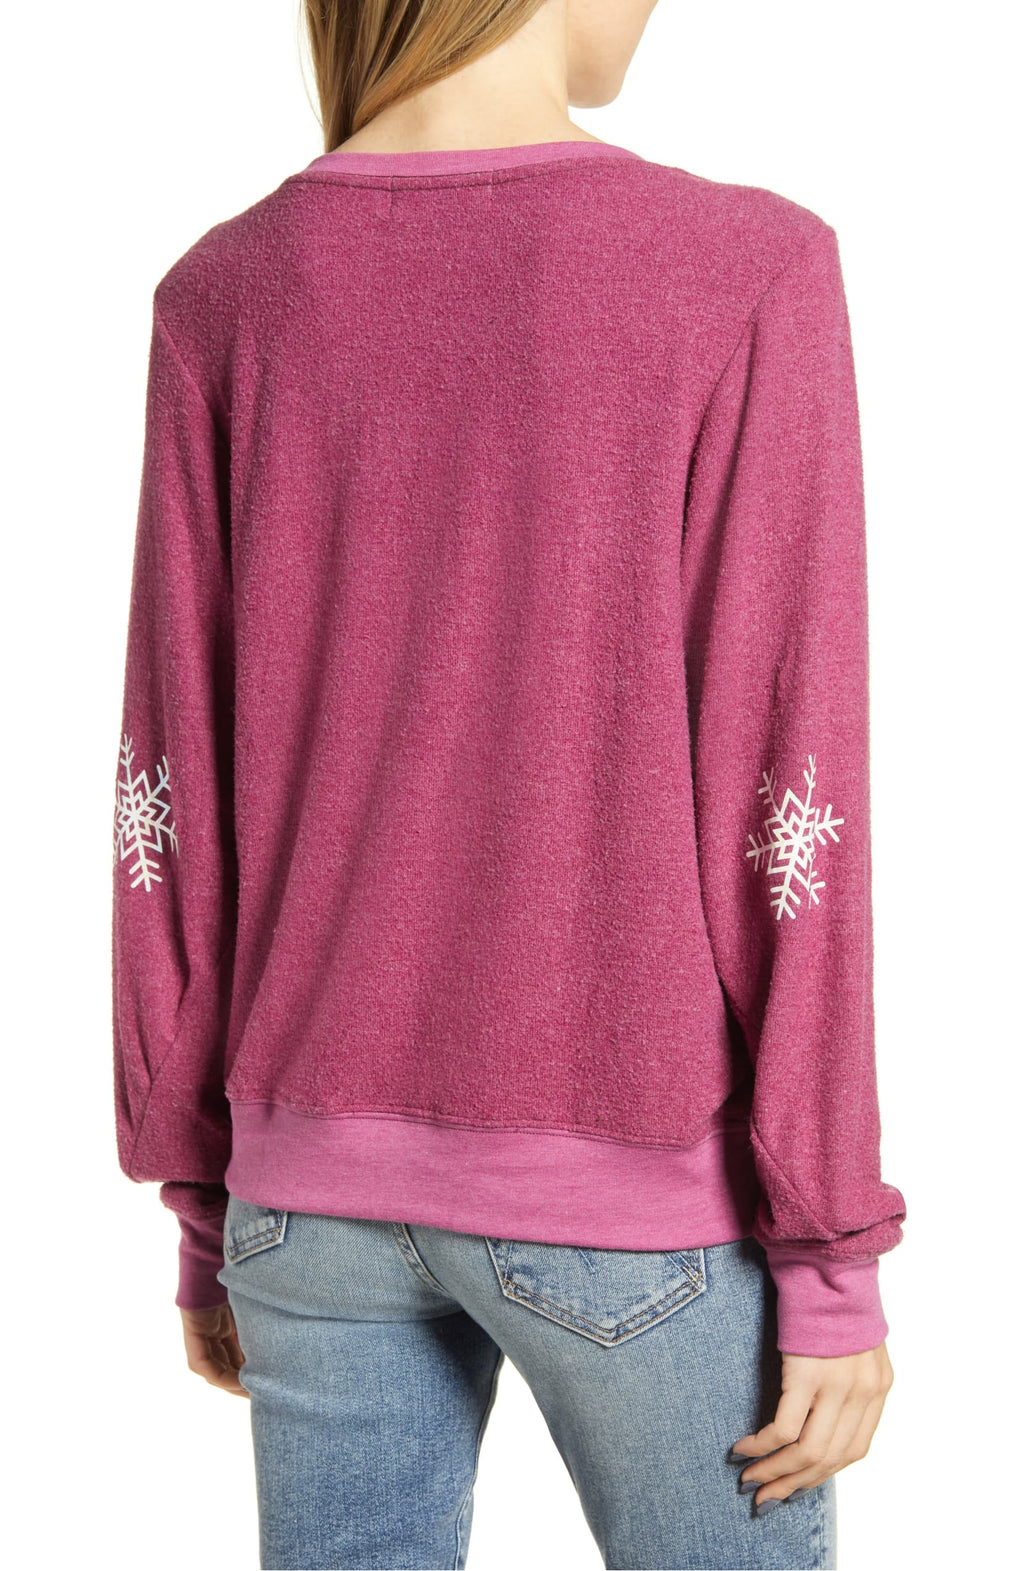 Wildfox Up to Snow Good Sweatshirt